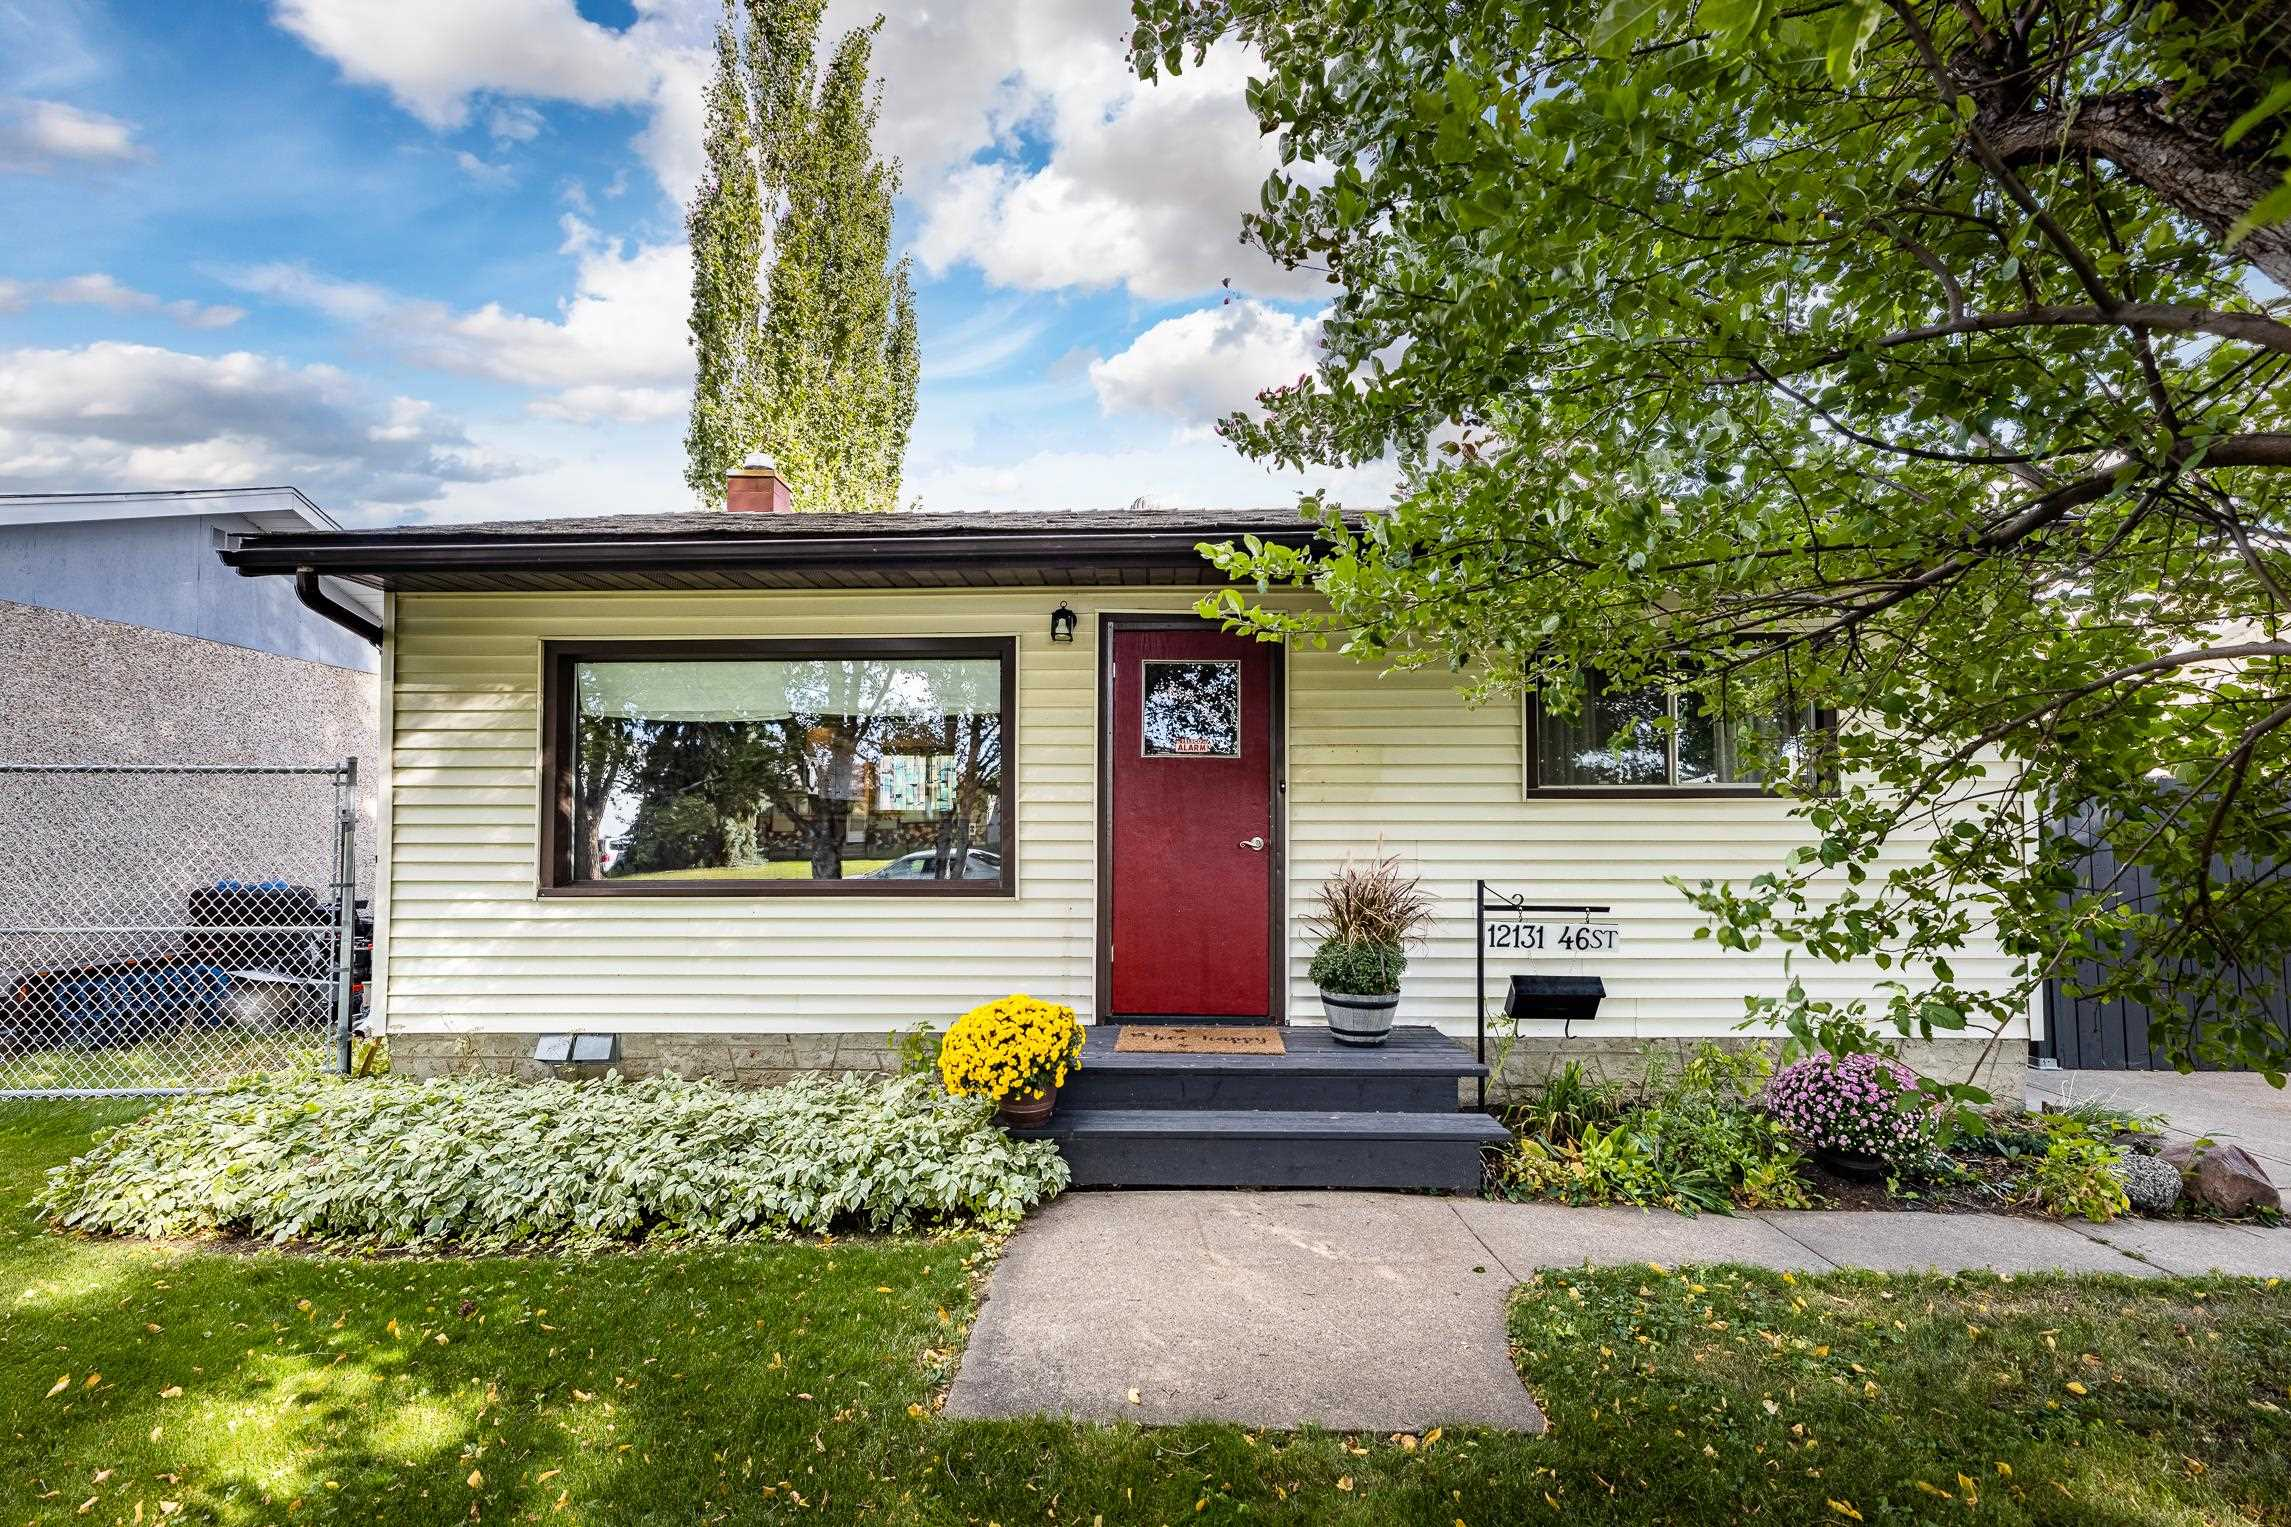 This charming bungalow is perfectly located on a quiet, tree-lined cul-de-sac in Beacon Heights and has everything you would want or need in a starter home.  The kitchen was remodeled in 2017 with new wood cabinets, stainless steel appliances and tile backsplash and adjoins to the living room with a pass-through eating bar. The rest of the main floor is home to two nice sized bedrooms and a renovated full bath. The basement, although only partially finished, has an office, an additional sleeping area and tons of storage. Furnace and HWT are 2006. 100 amp electrical. The outside is a real drawing feature - massive yard, fully fenced, landscaped with apple, plum and cherry trees, saskatoon and raspberry bushes, fire pit, oversized, heated double detached garage, parking area, storage shed/art room, side patio, shared storage cage with the neighbours and RV parking! The shingles are made of a composite material and have a lifetime warranty. Beacon Heights Elementary is one block away. Lots of street parking!